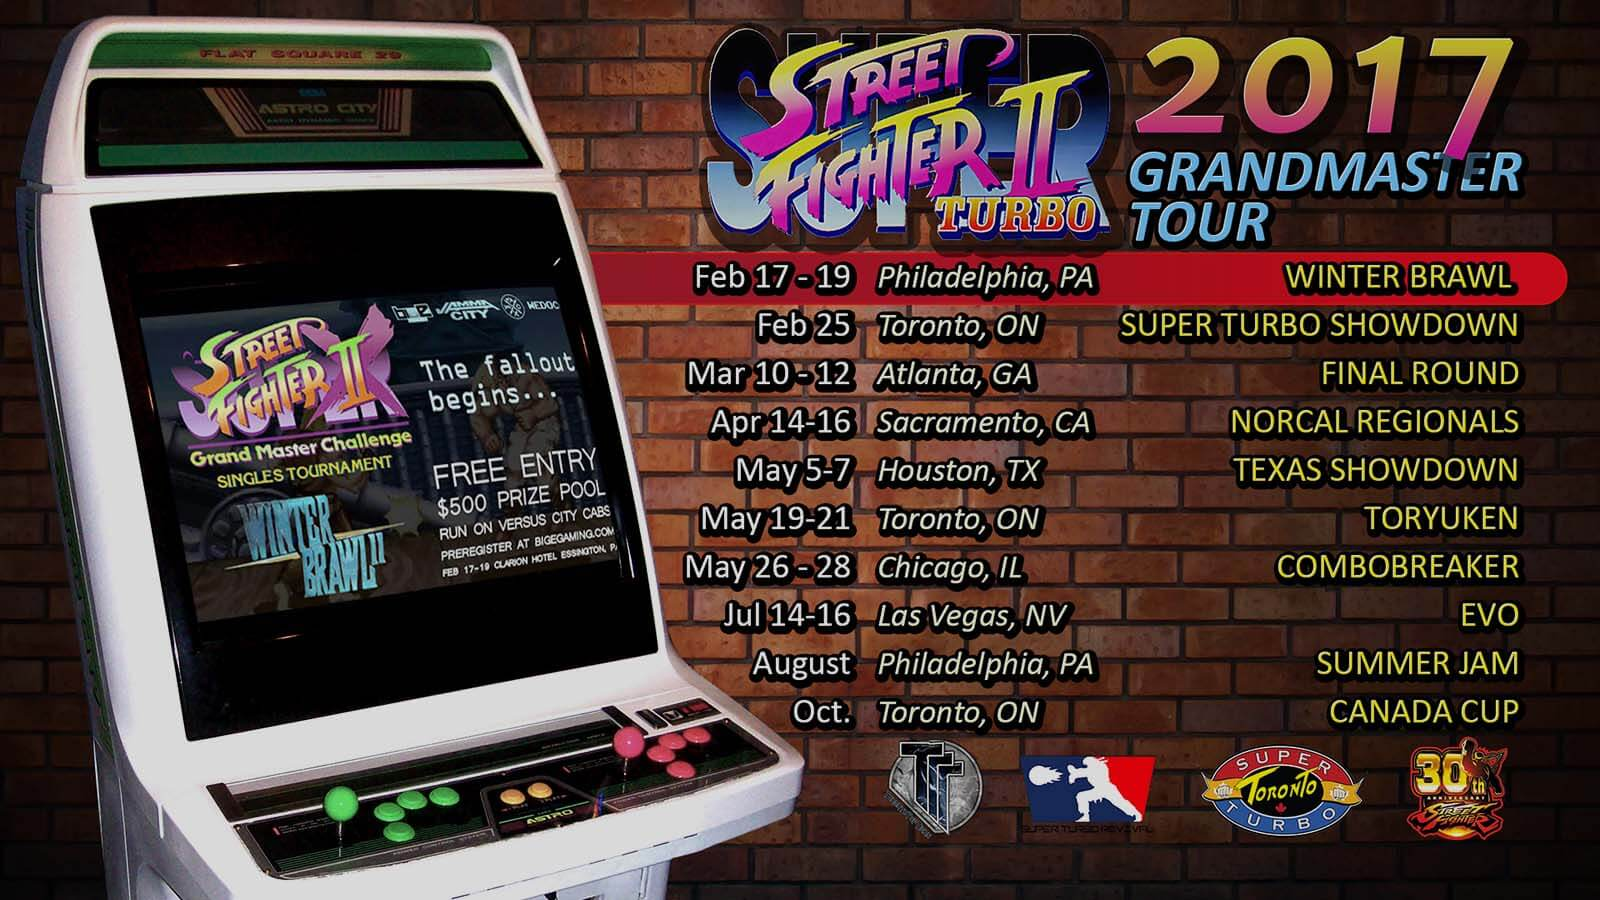 Super Turbo Tour 2017